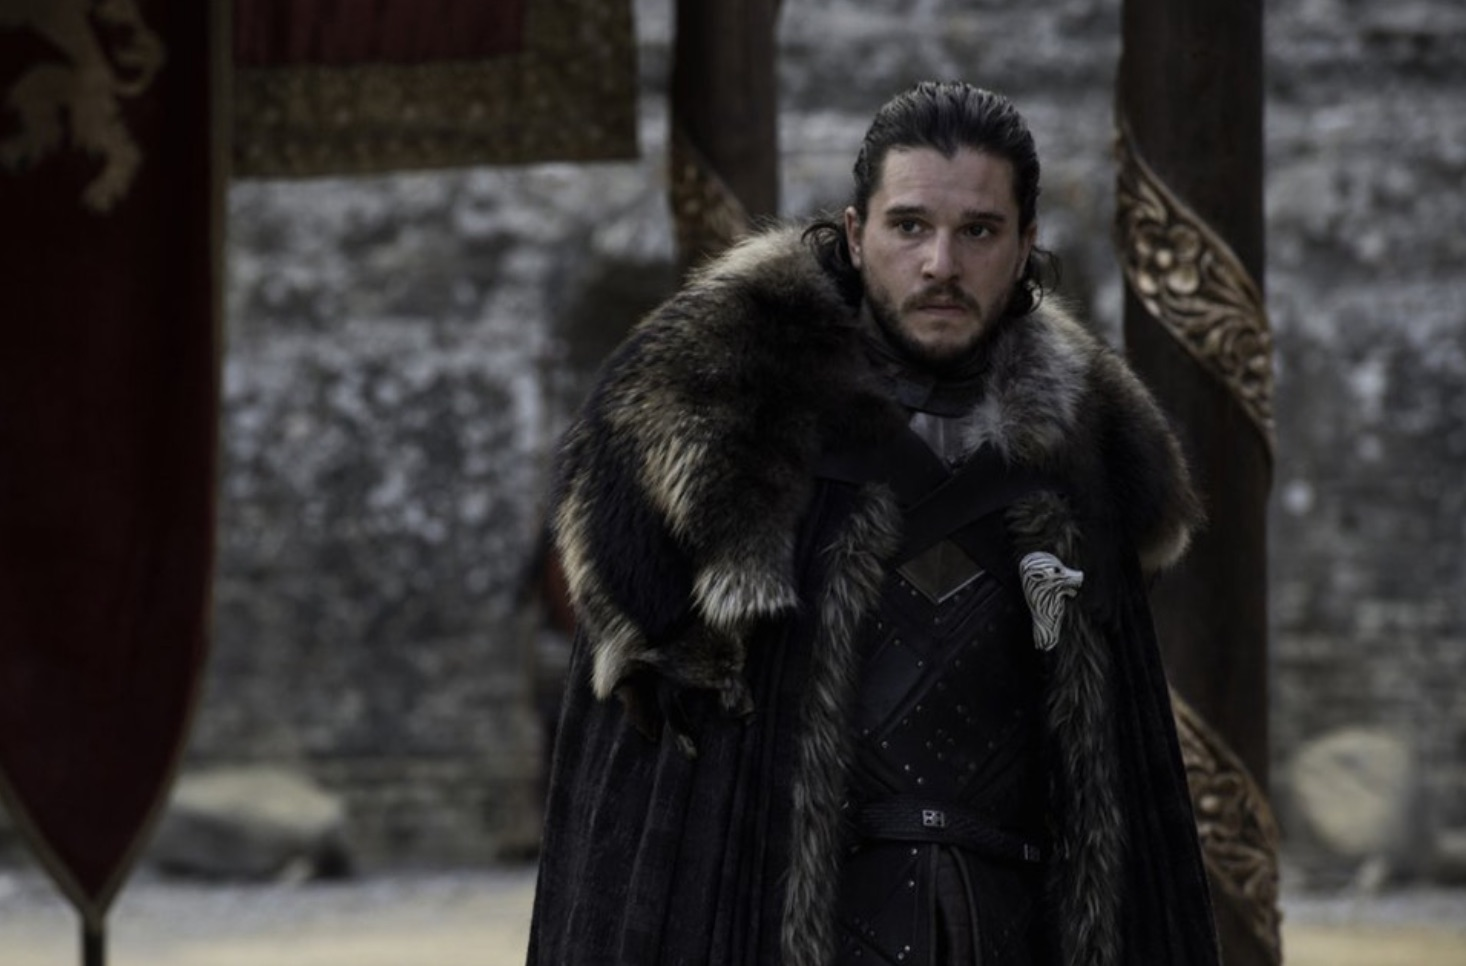 When Does 'Game of Thrones' Season 8 Come Out?